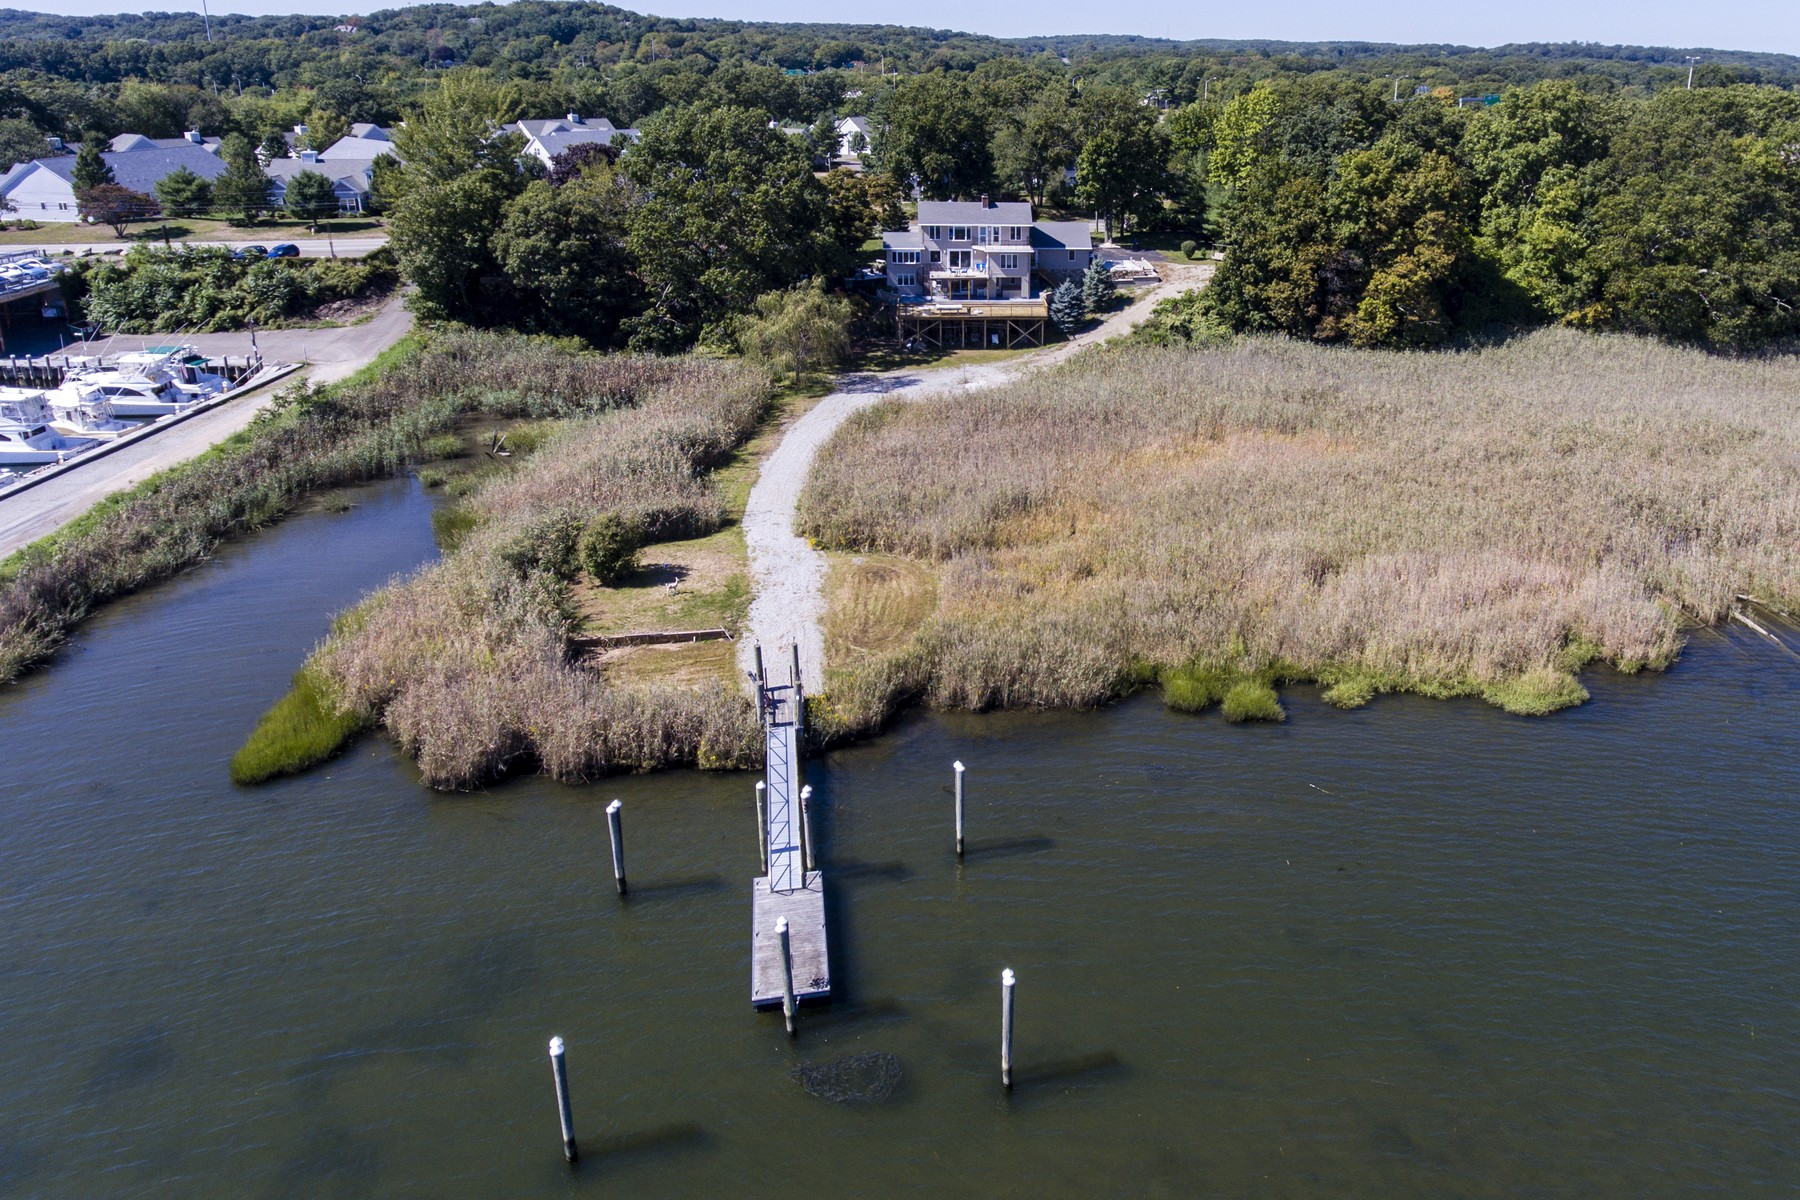 Casa Unifamiliar por un Venta en Waterfront Property With Breathtaking Views 180 Ferry Road Old Saybrook, Connecticut, 06475 Estados Unidos